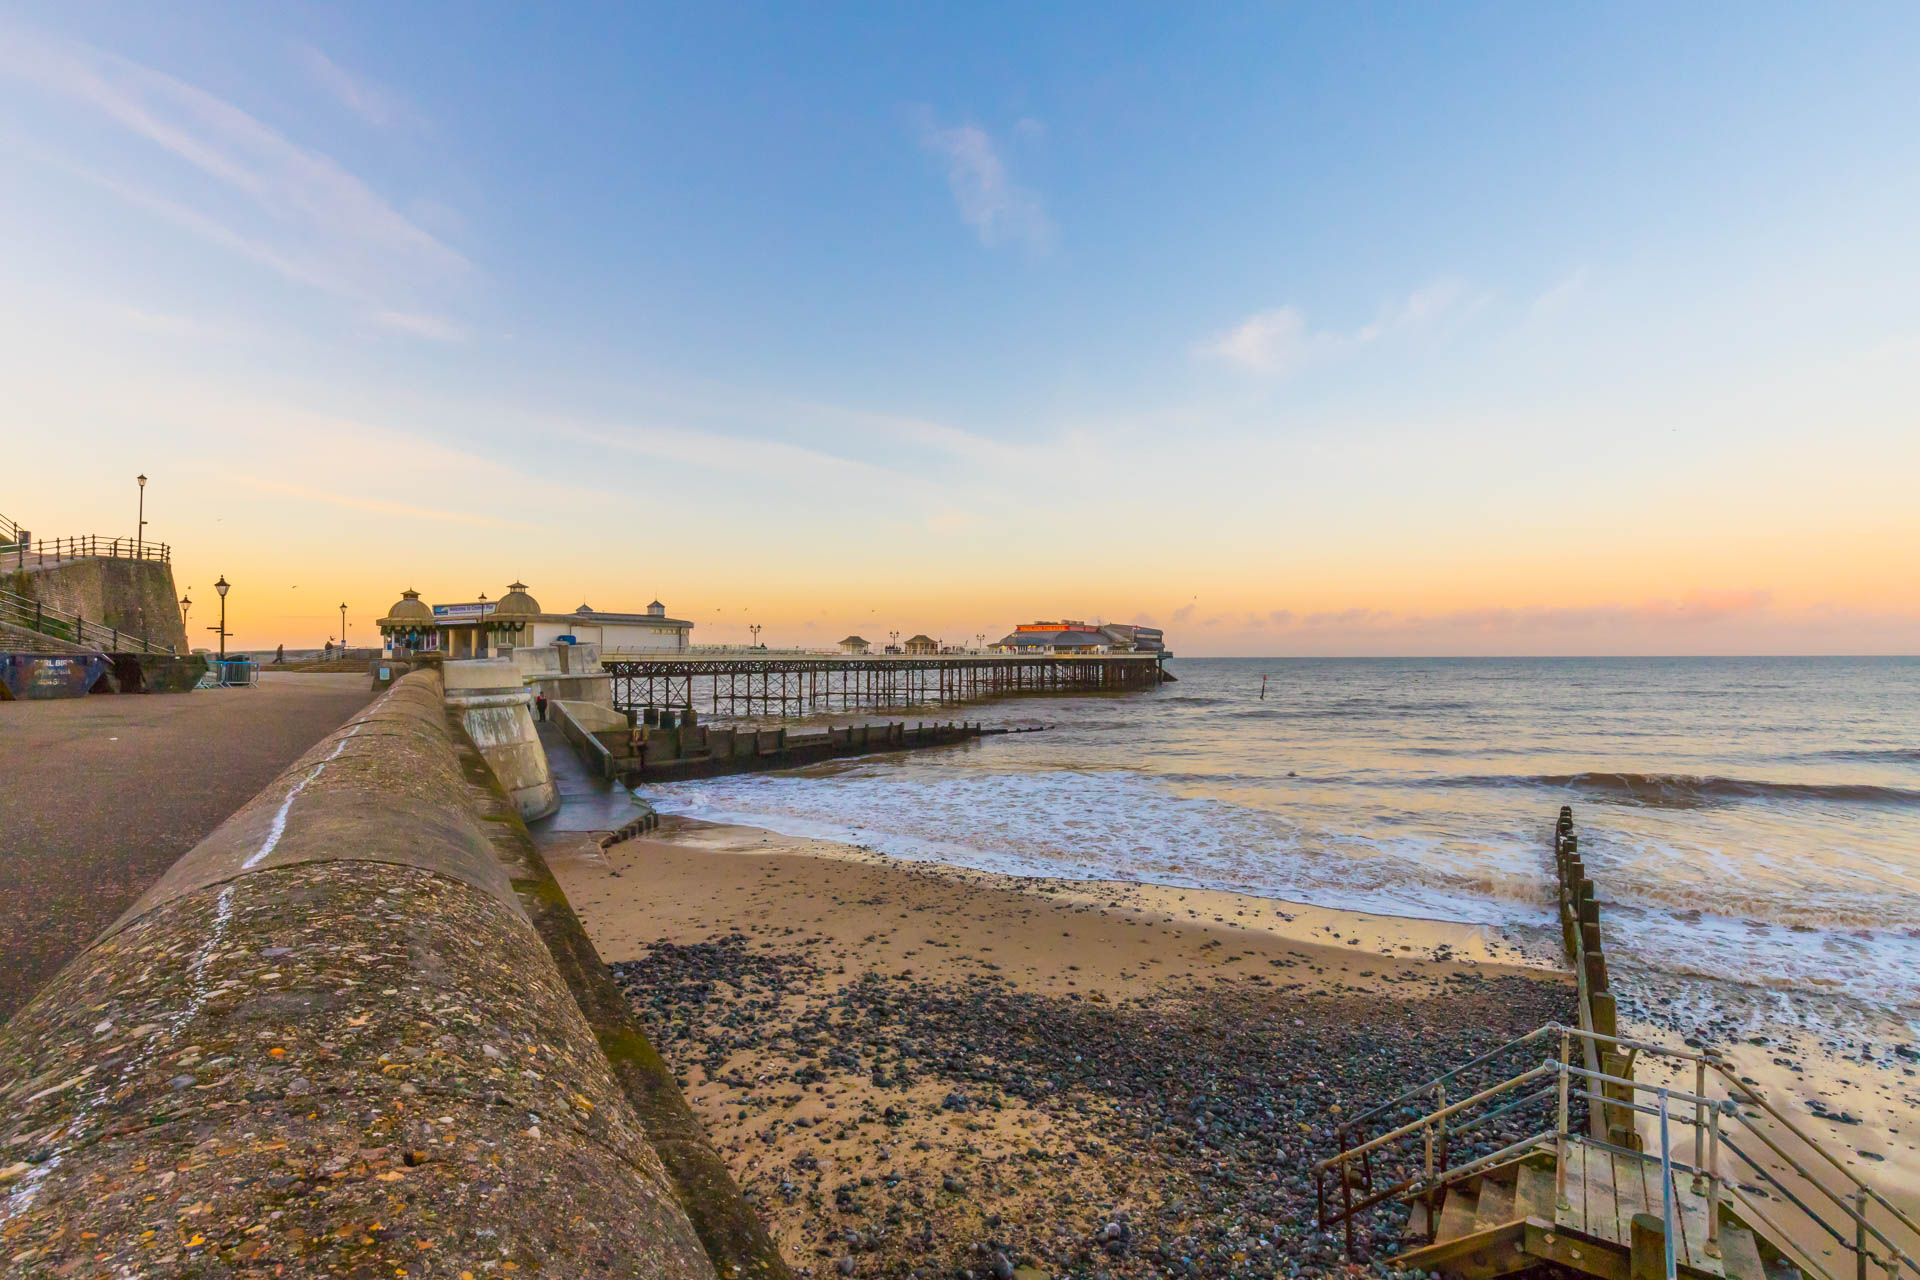 Cromer pier and seaside with a beautiful sunset.